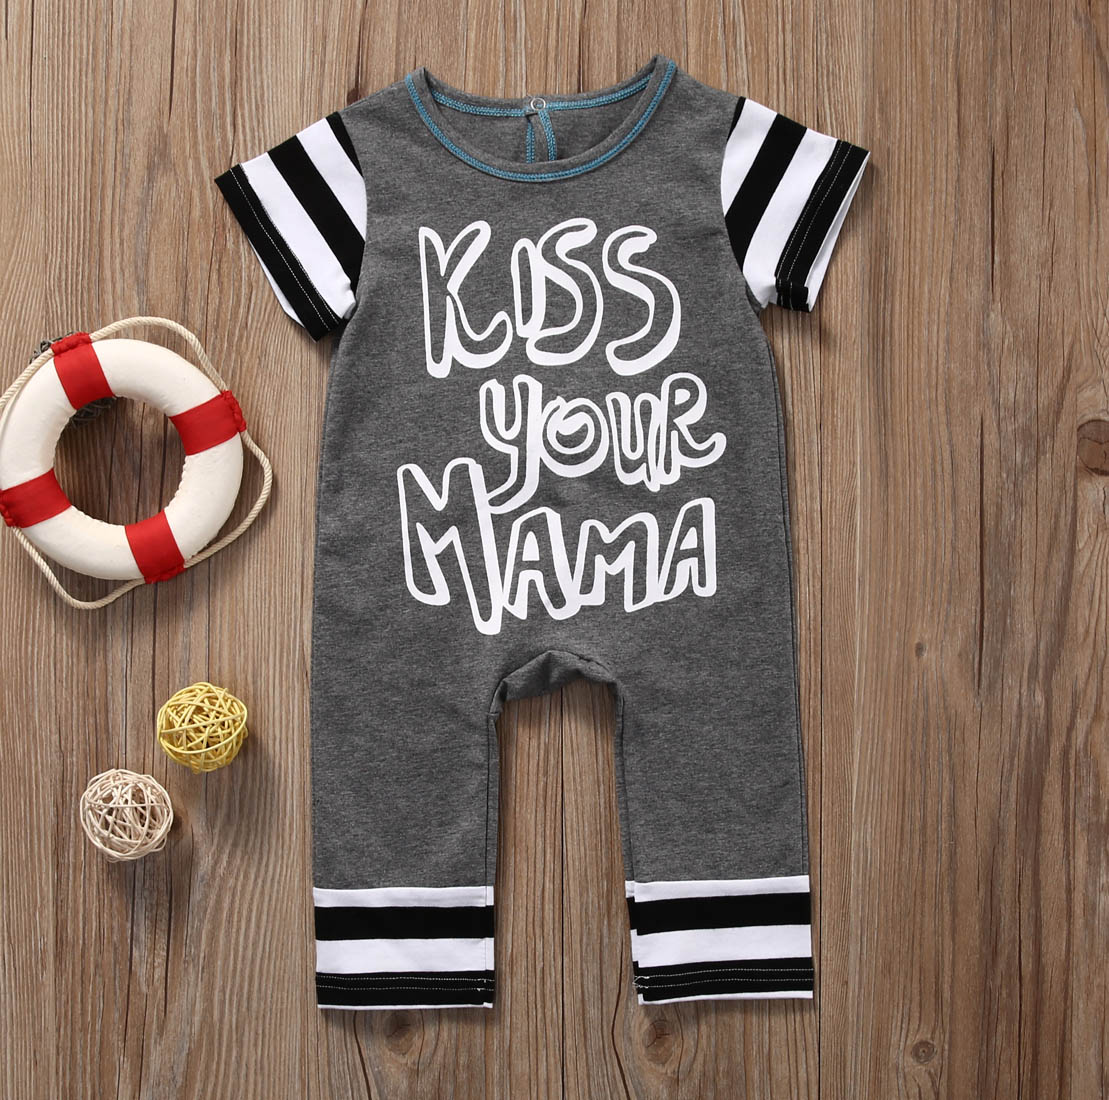 Image of: Kiss Your Mama 2017 New Summer Newborn Kids Baby Boys Girls Short Sleeve Romper Striped Jumpsuit Clothes Outfitsin Rompers From Mother Kids On Meme Generator Kiss Your Mama 2017 New Summer Newborn Kids Baby Boys Girls Short